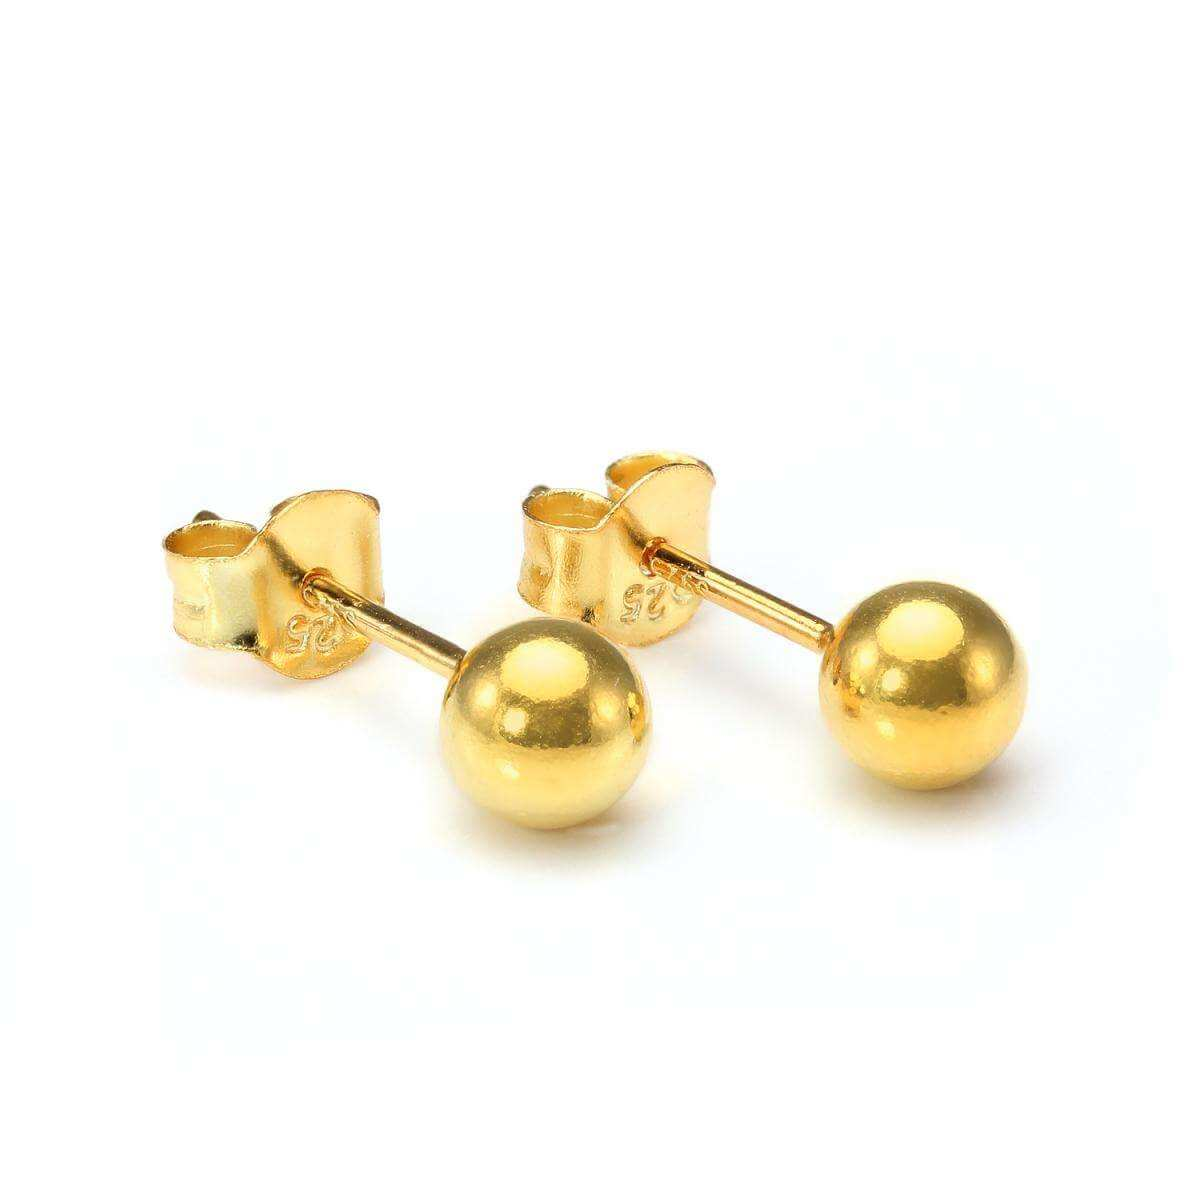 Gold Plated Small 5mm Sterling Silver Ball Stud Earrings